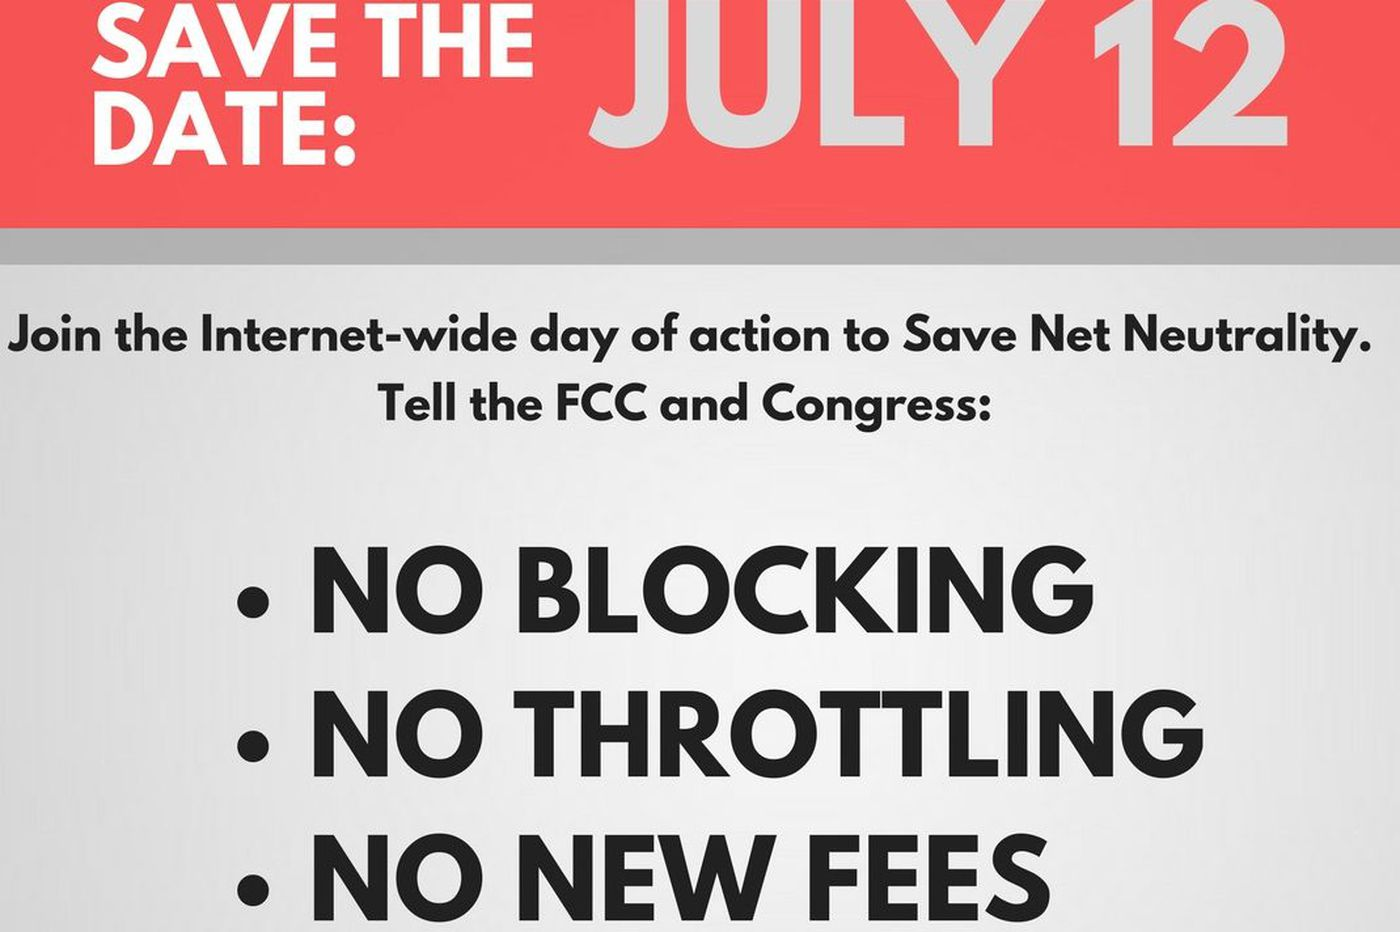 Twitter, Etsy, other websites expected to protest proposed 'net neutrality' rollback